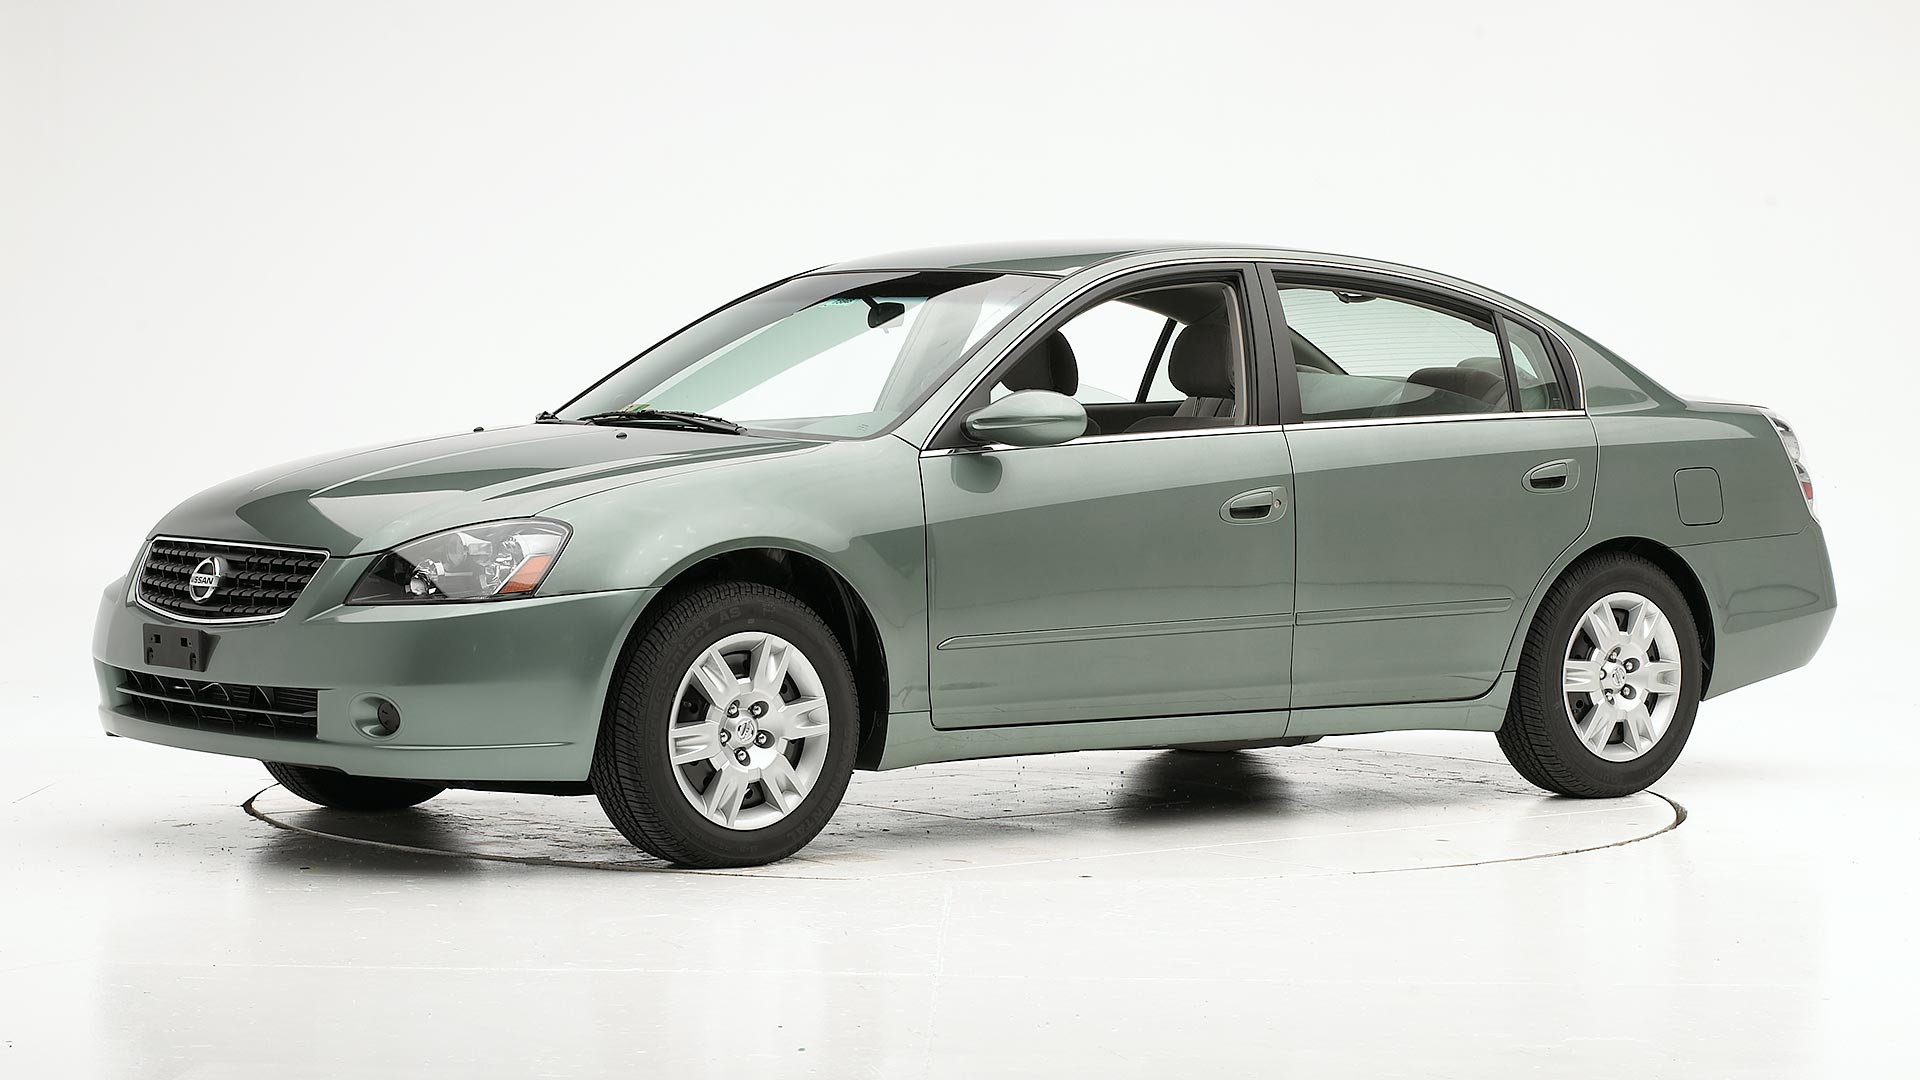 2006 Nissan Altima 4-door sedan